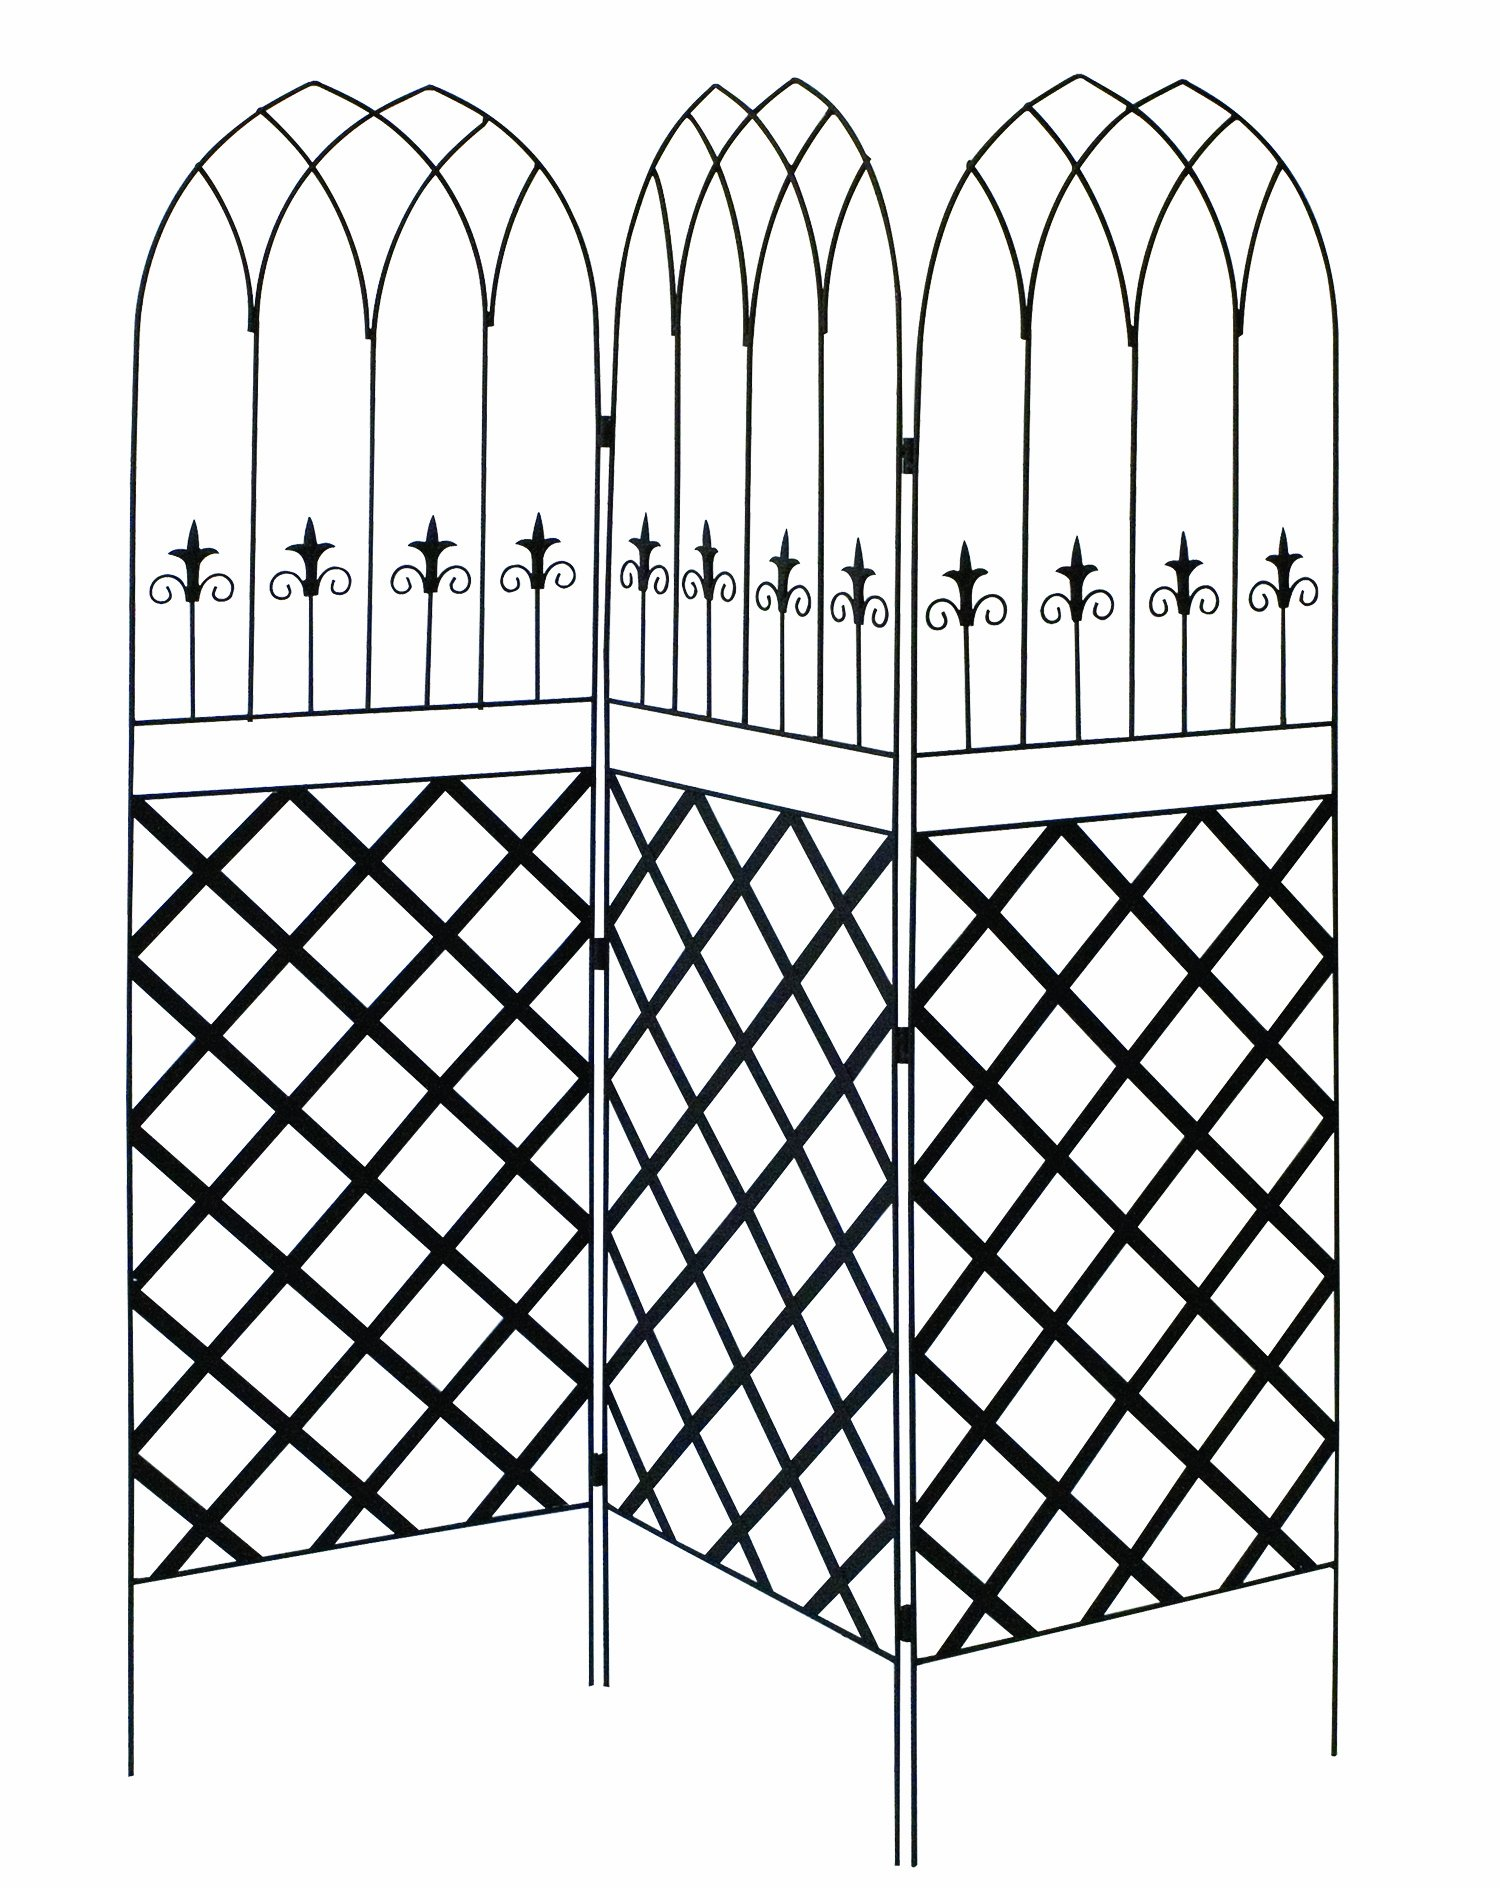 Panacea 89660 Gothic Garden Screen Trellis with Lattice, 72-Inch, Black